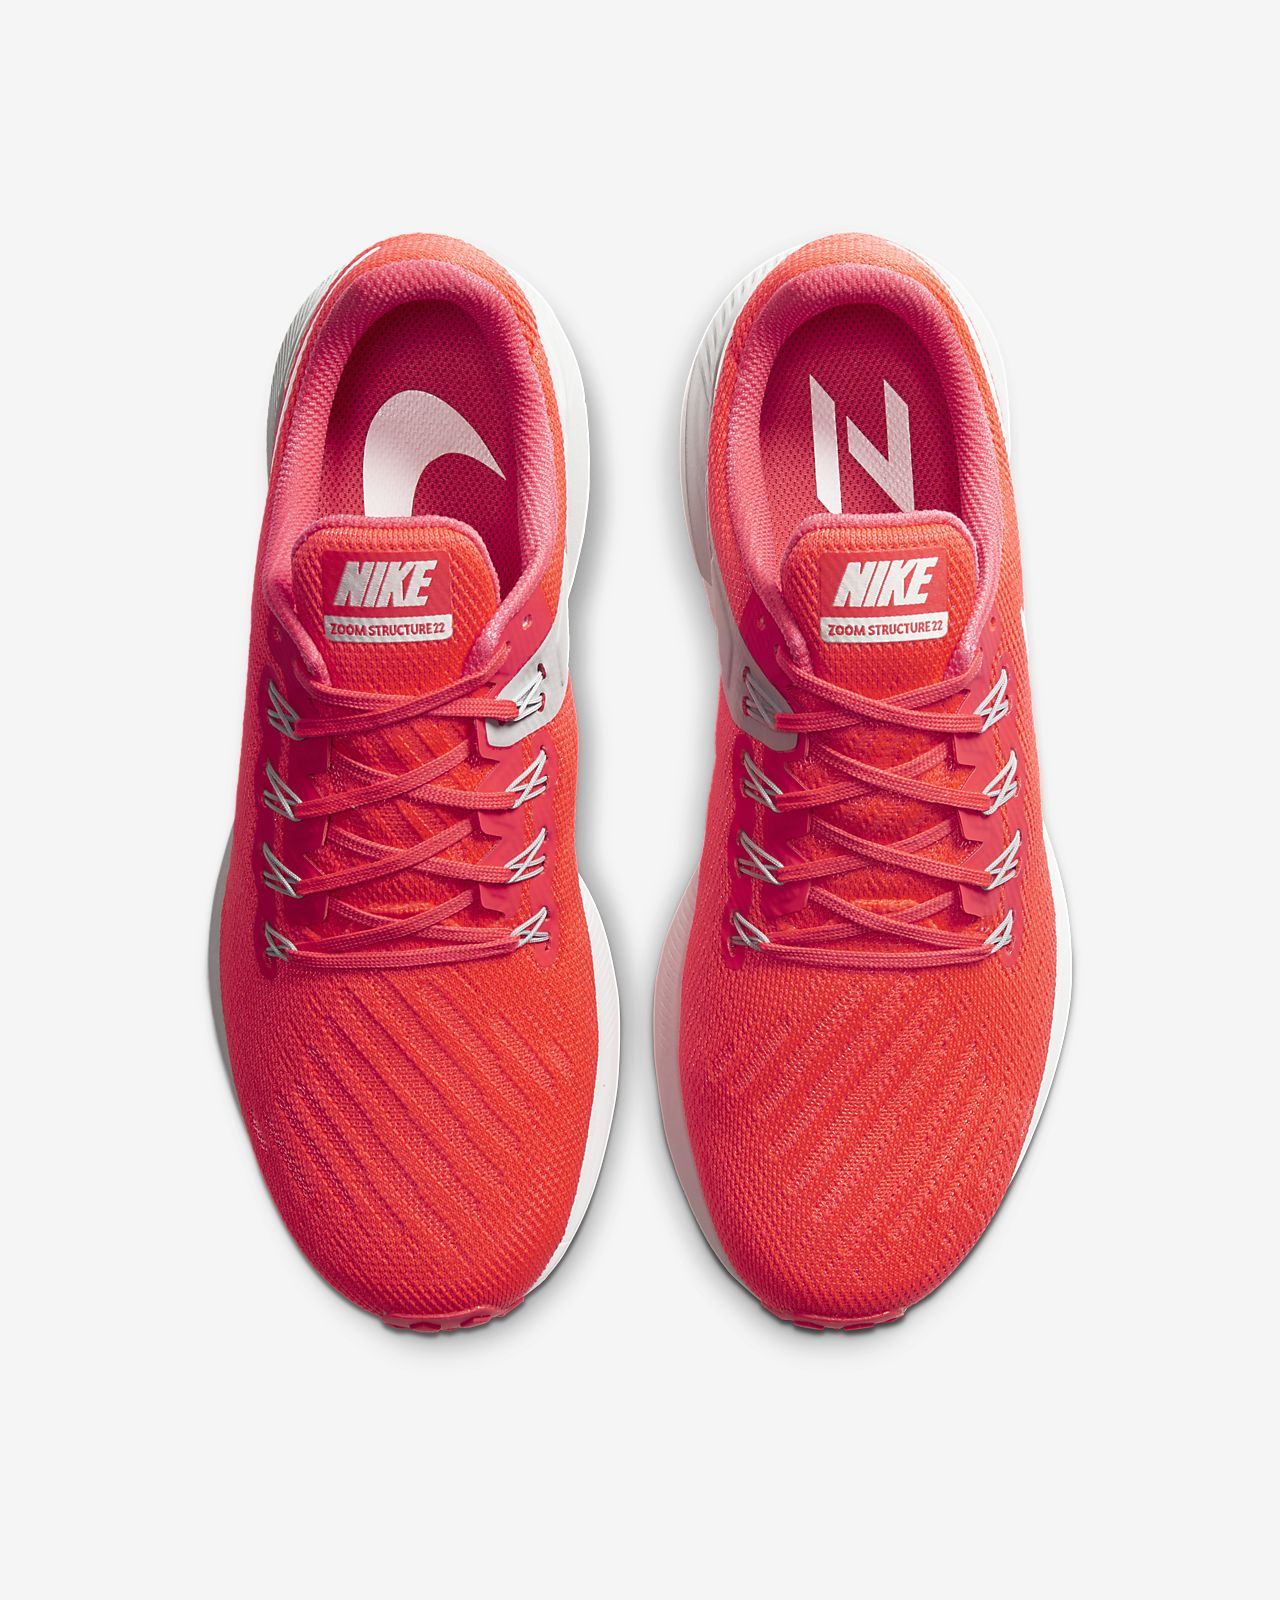 Nike Air Zoom Structure 22 Running Shoes Ladies | Nike air